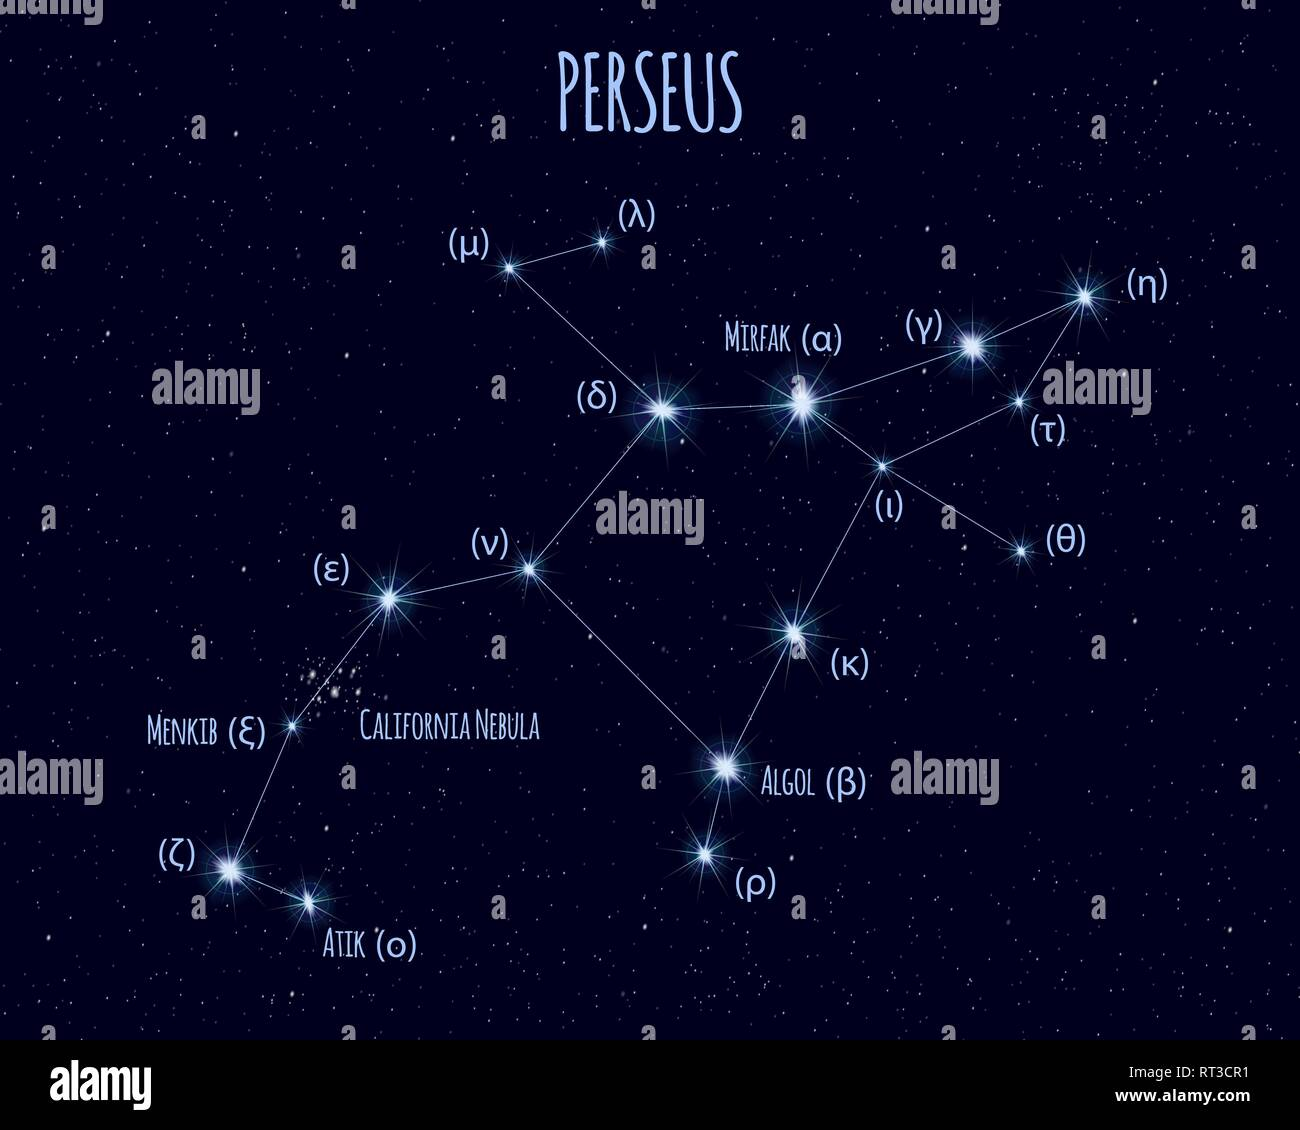 Perseus constellation, vector illustration with the names of basic stars against the starry sky - Stock Image